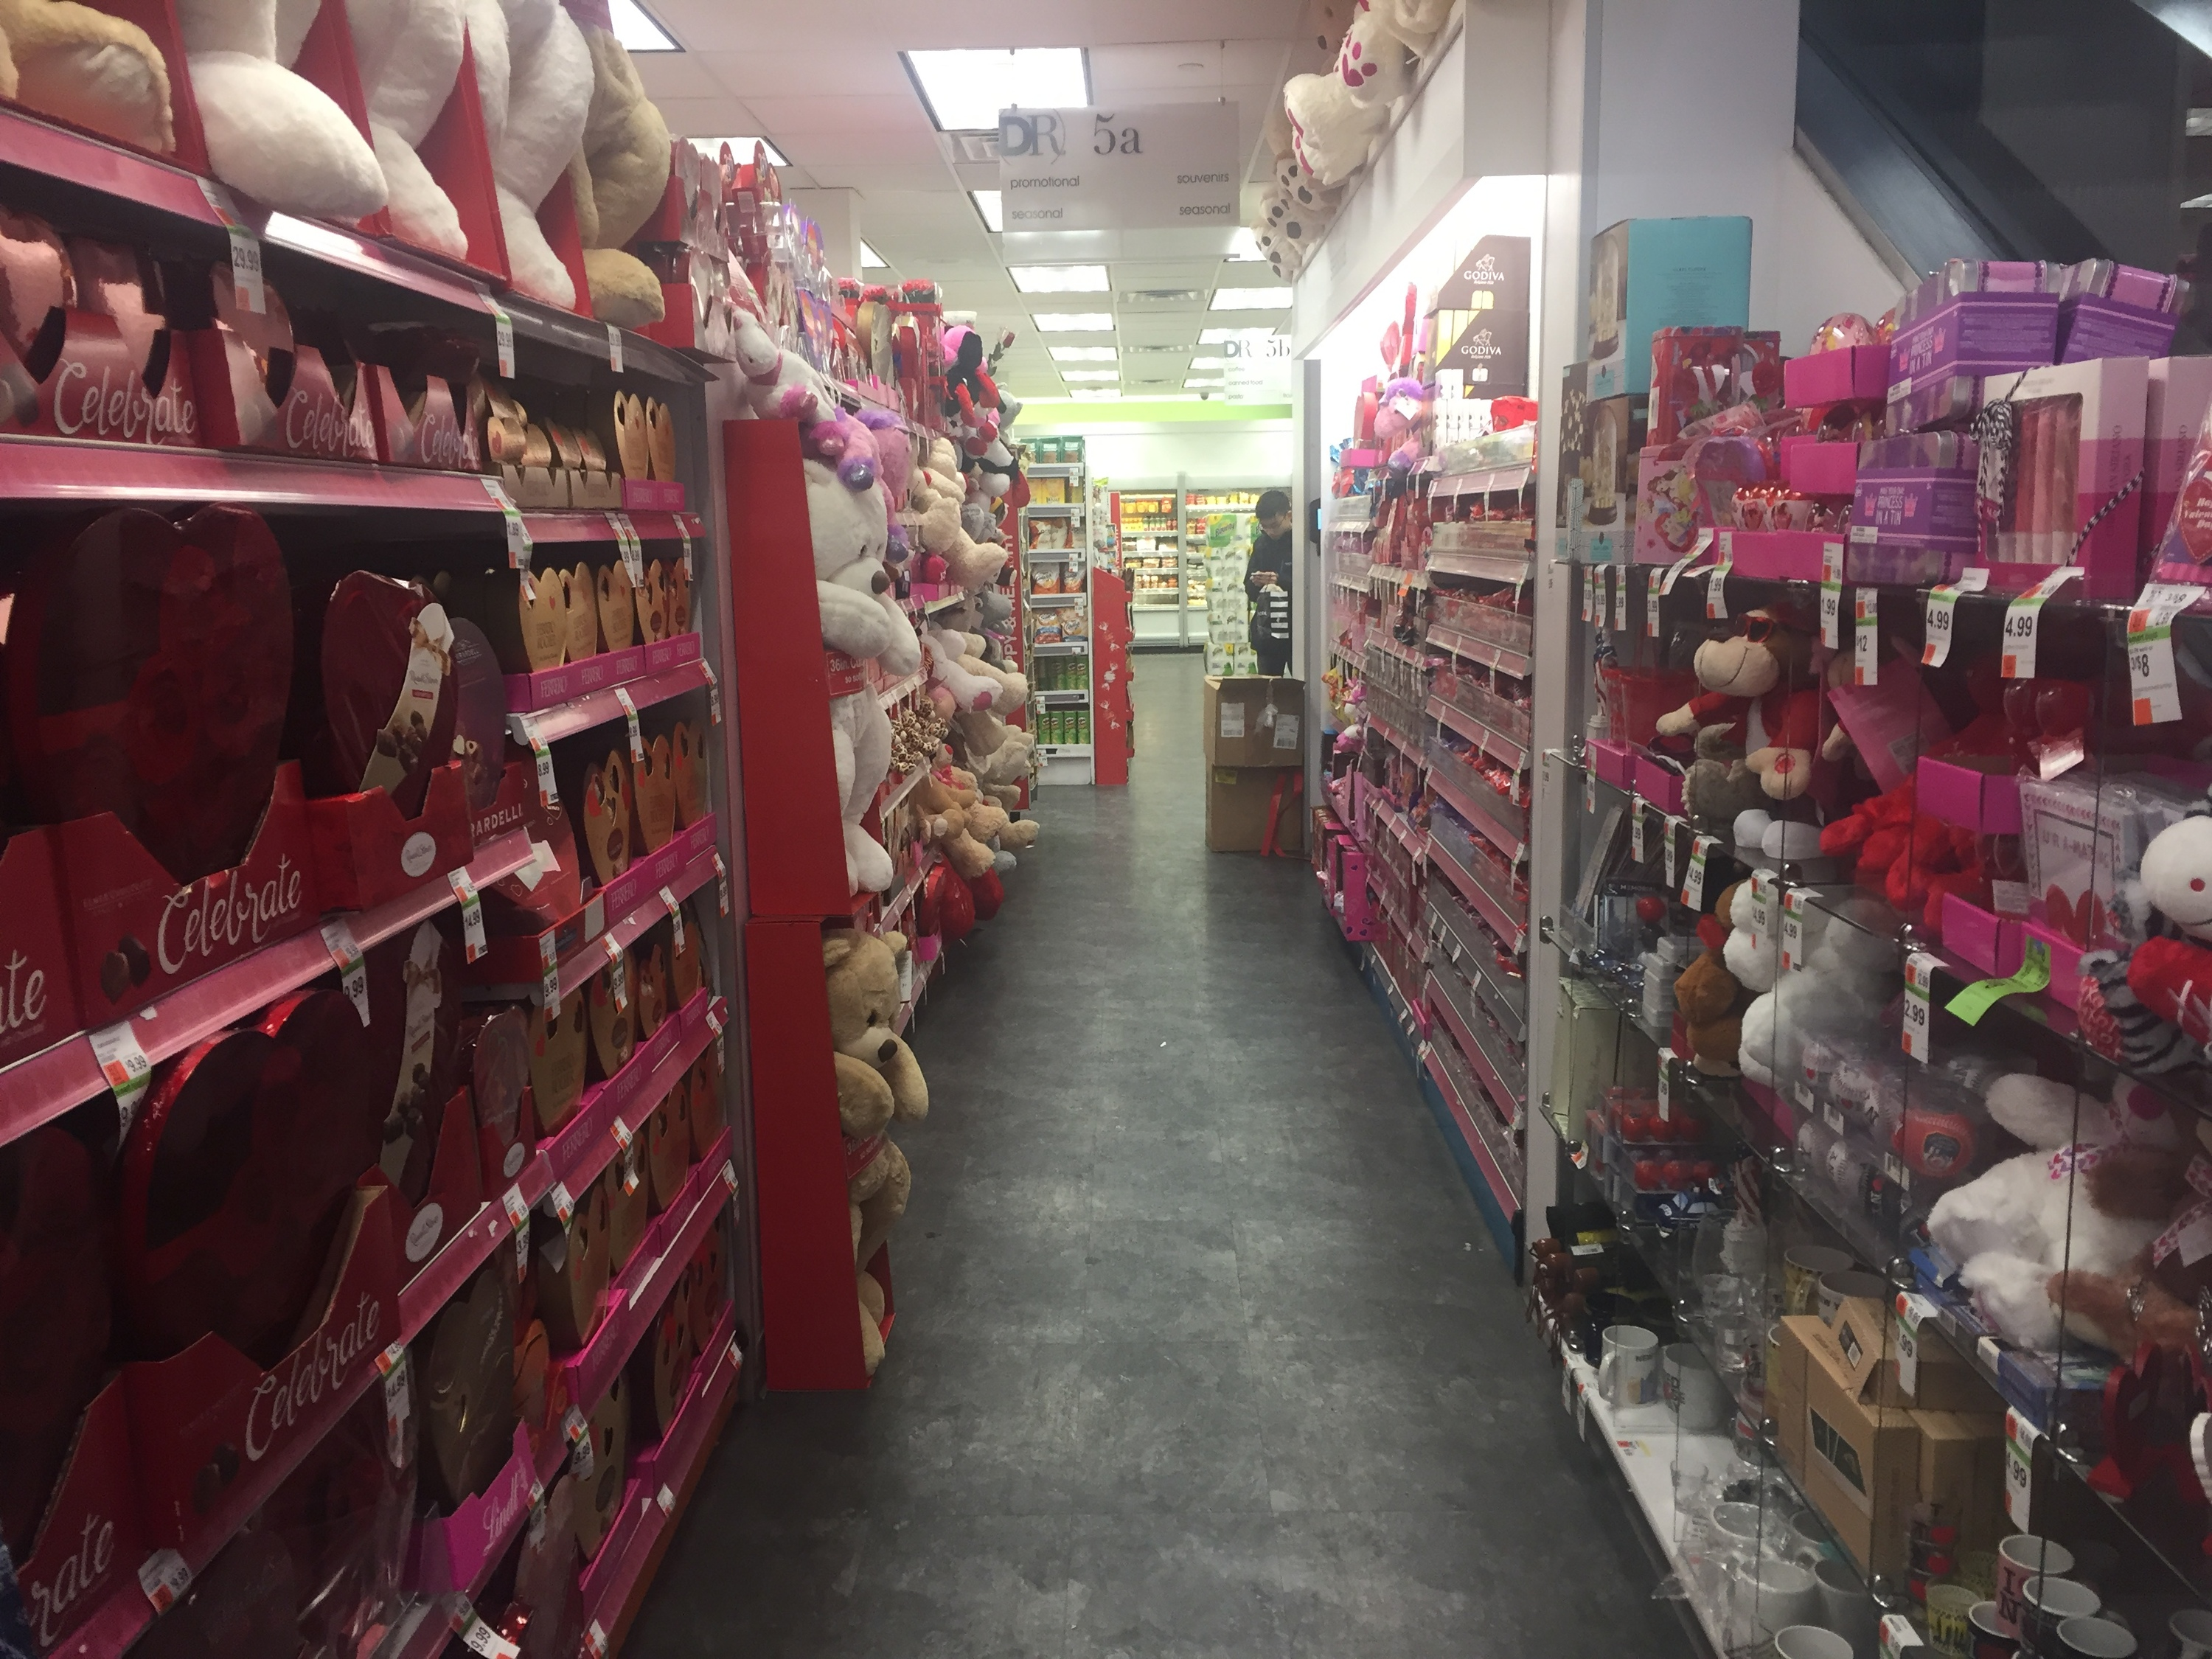 The saddest gifts for sale in the Valentine's Day aisle at Duane Reade